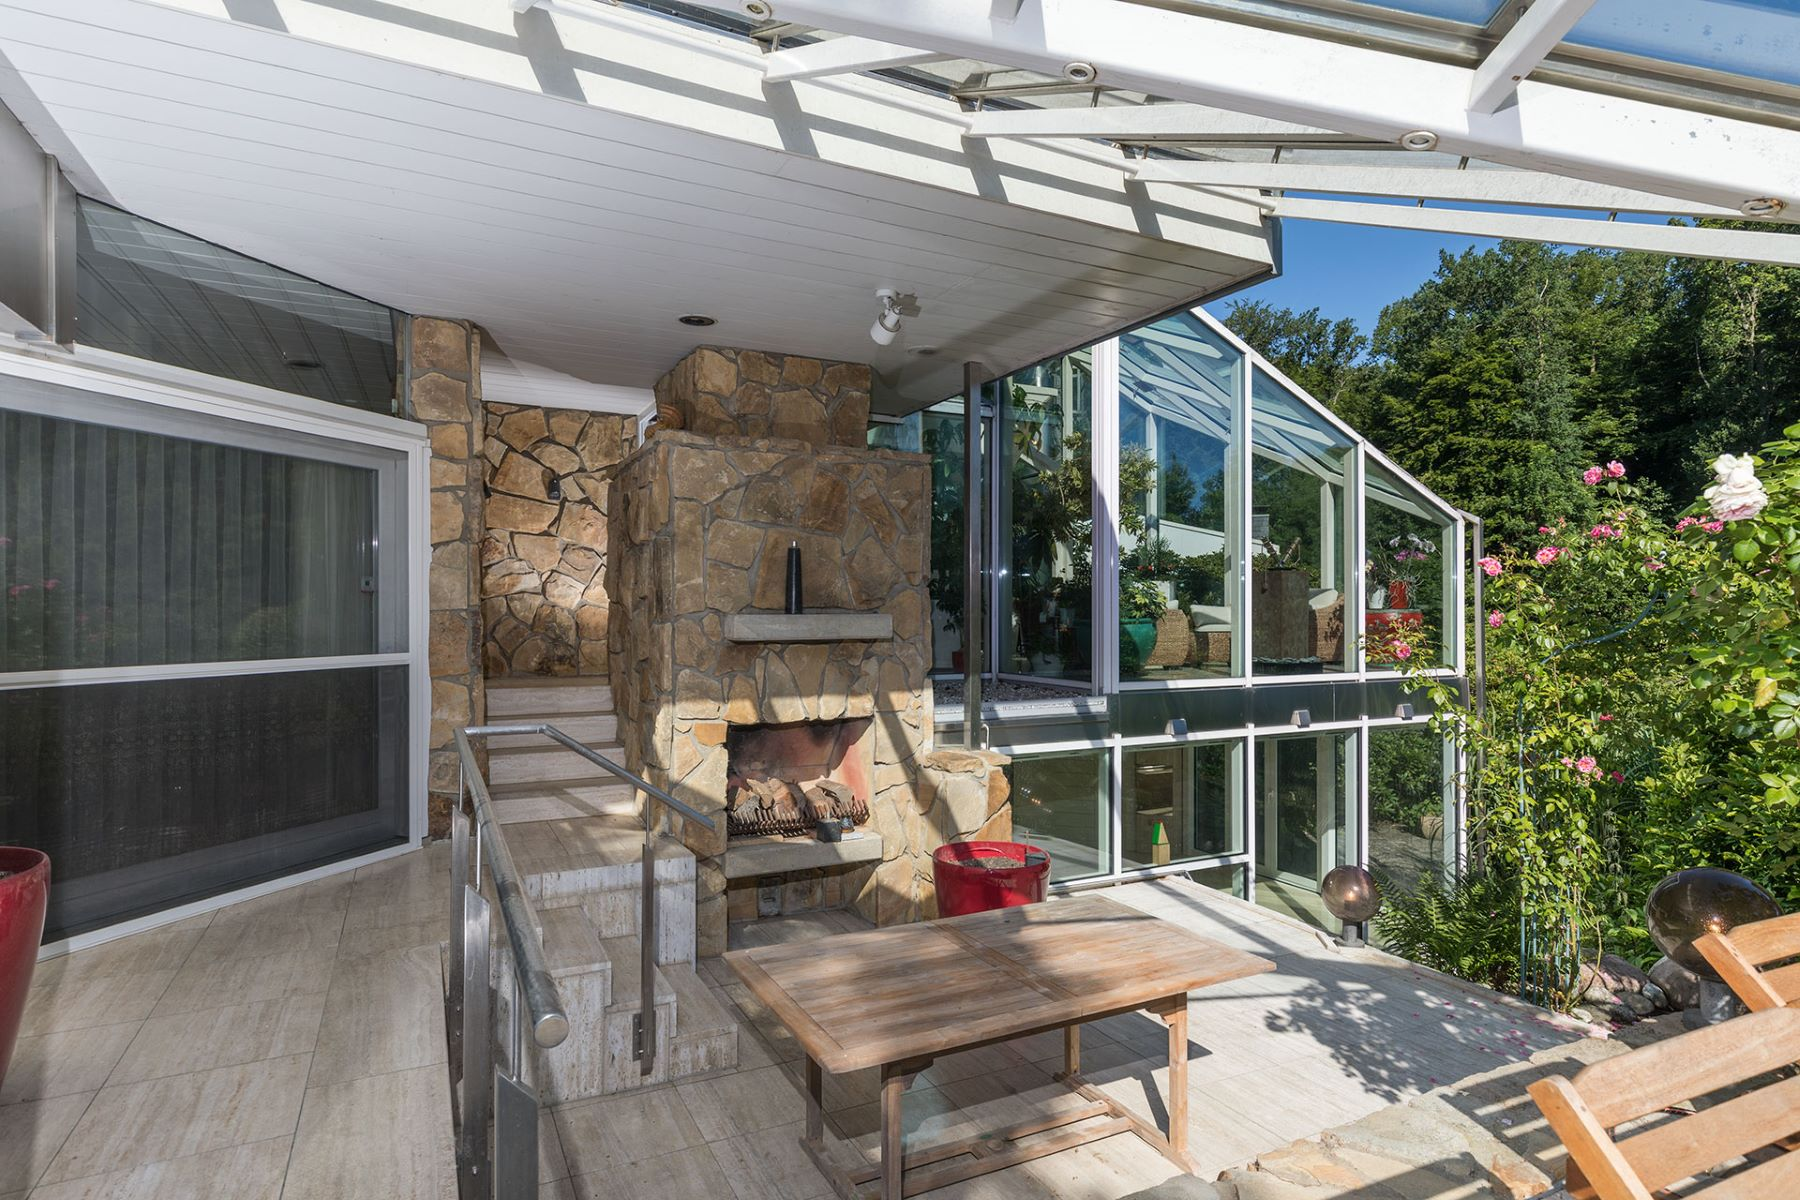 Additional photo for property listing at Aachen Luxurious villa Aachen south Aachen, North Rhine Westphalia 52076 Germany